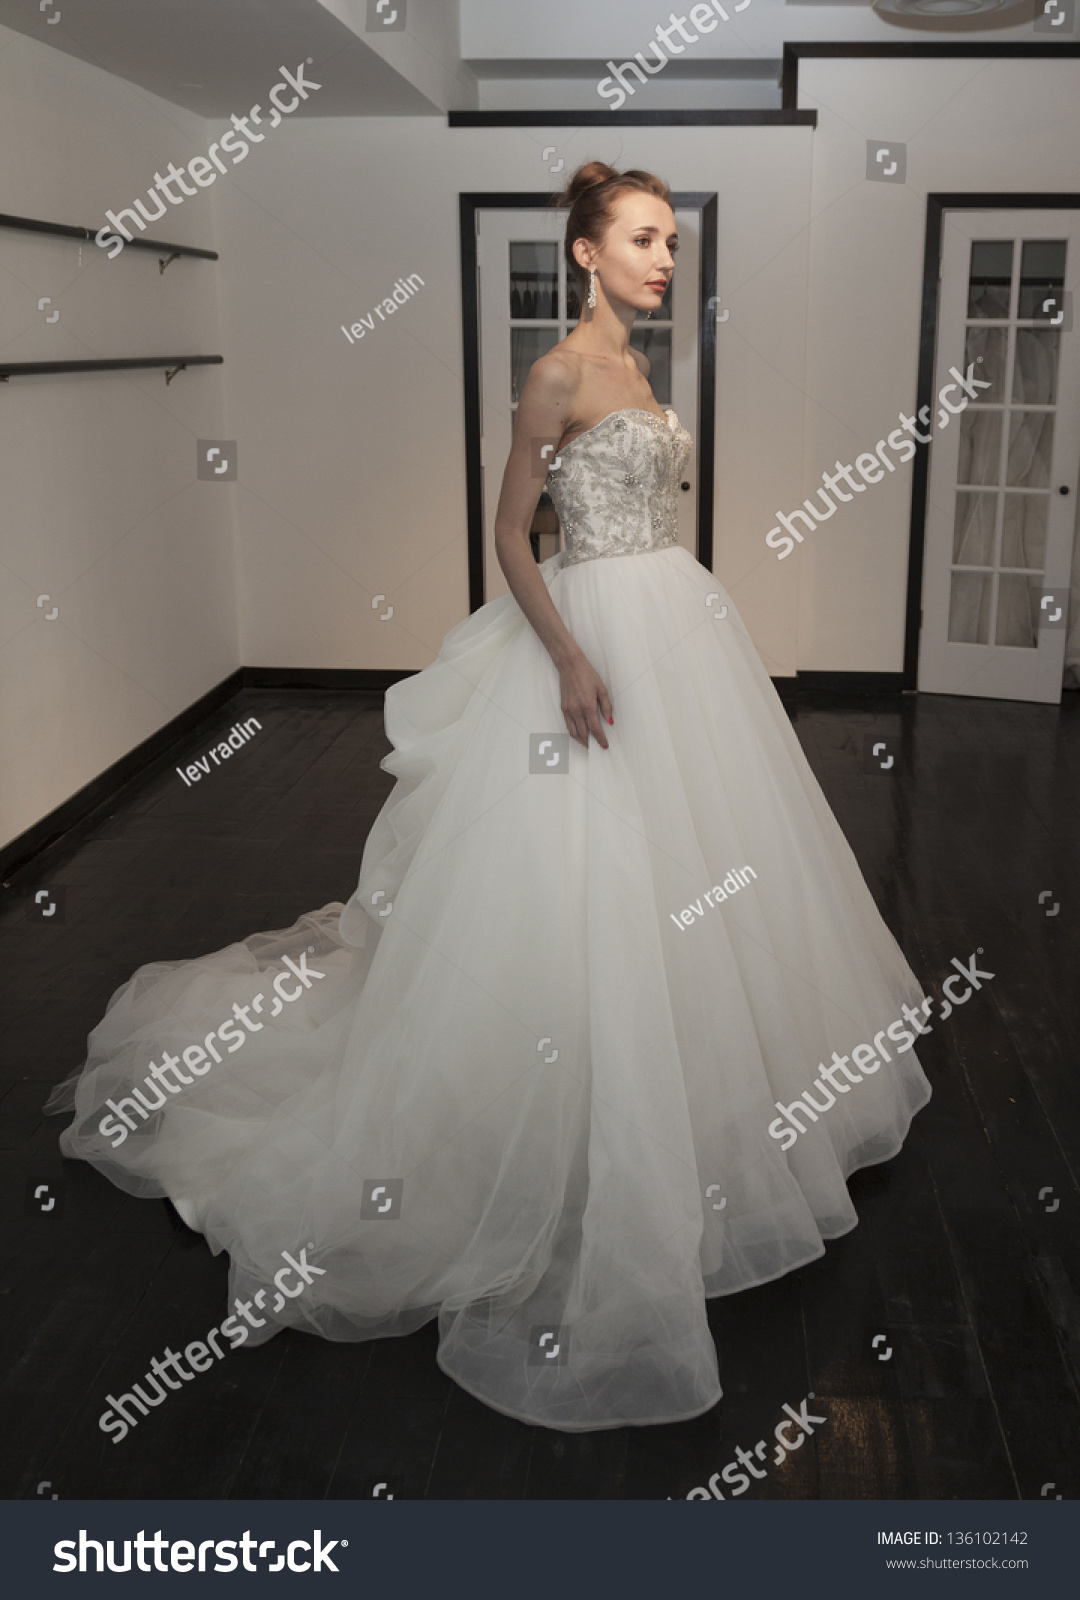 New york april 21 model shows off wedding dress by for 37th street salon